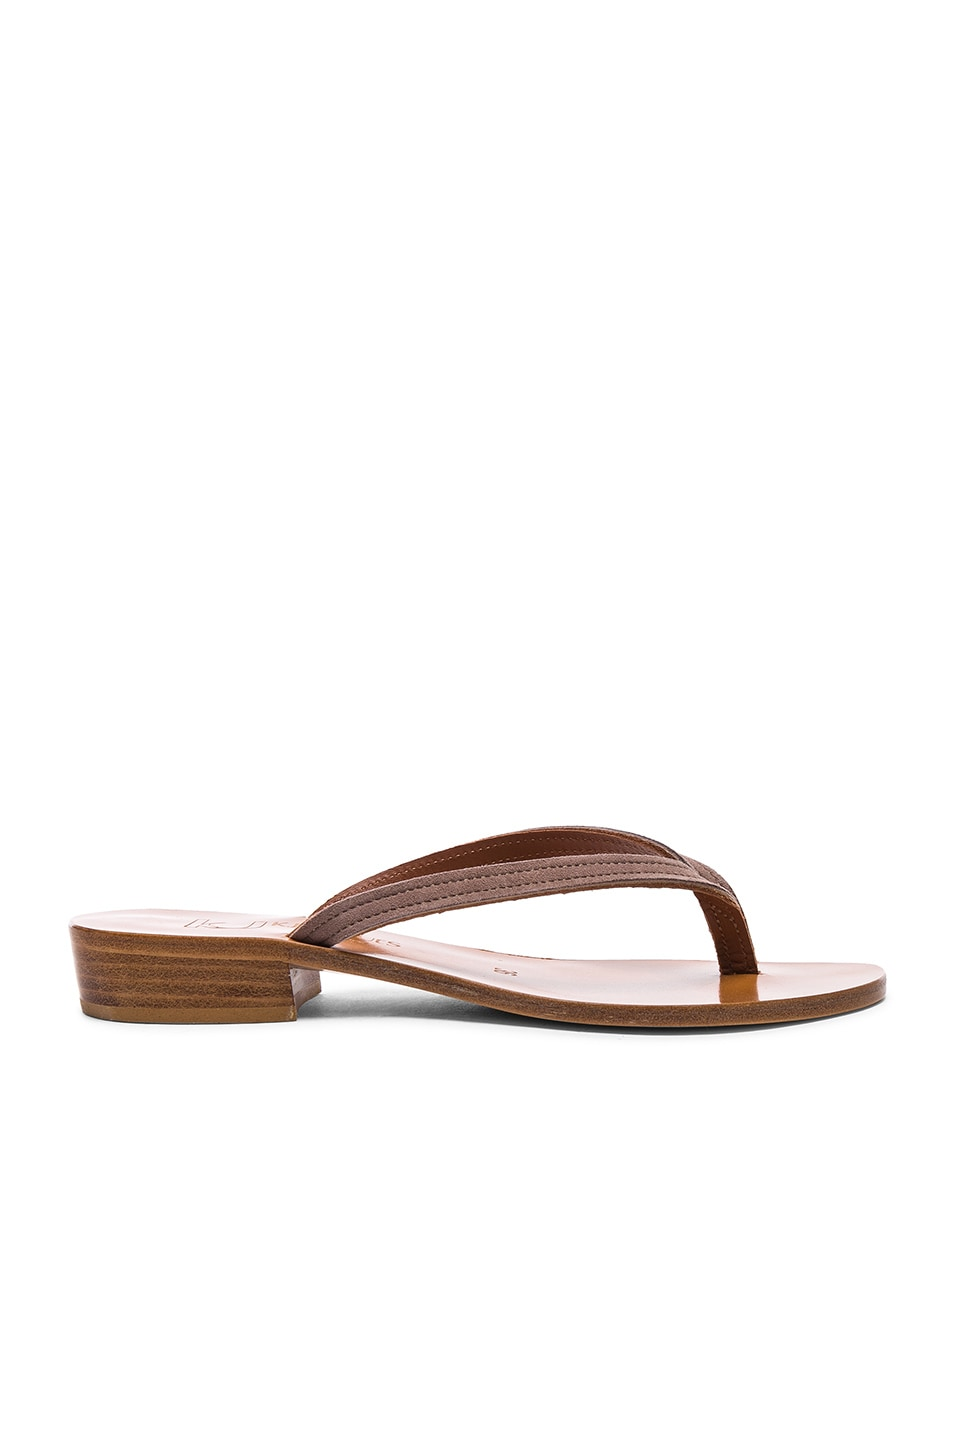 Image 1 of K Jacques Prato Sandals in Velours Amande